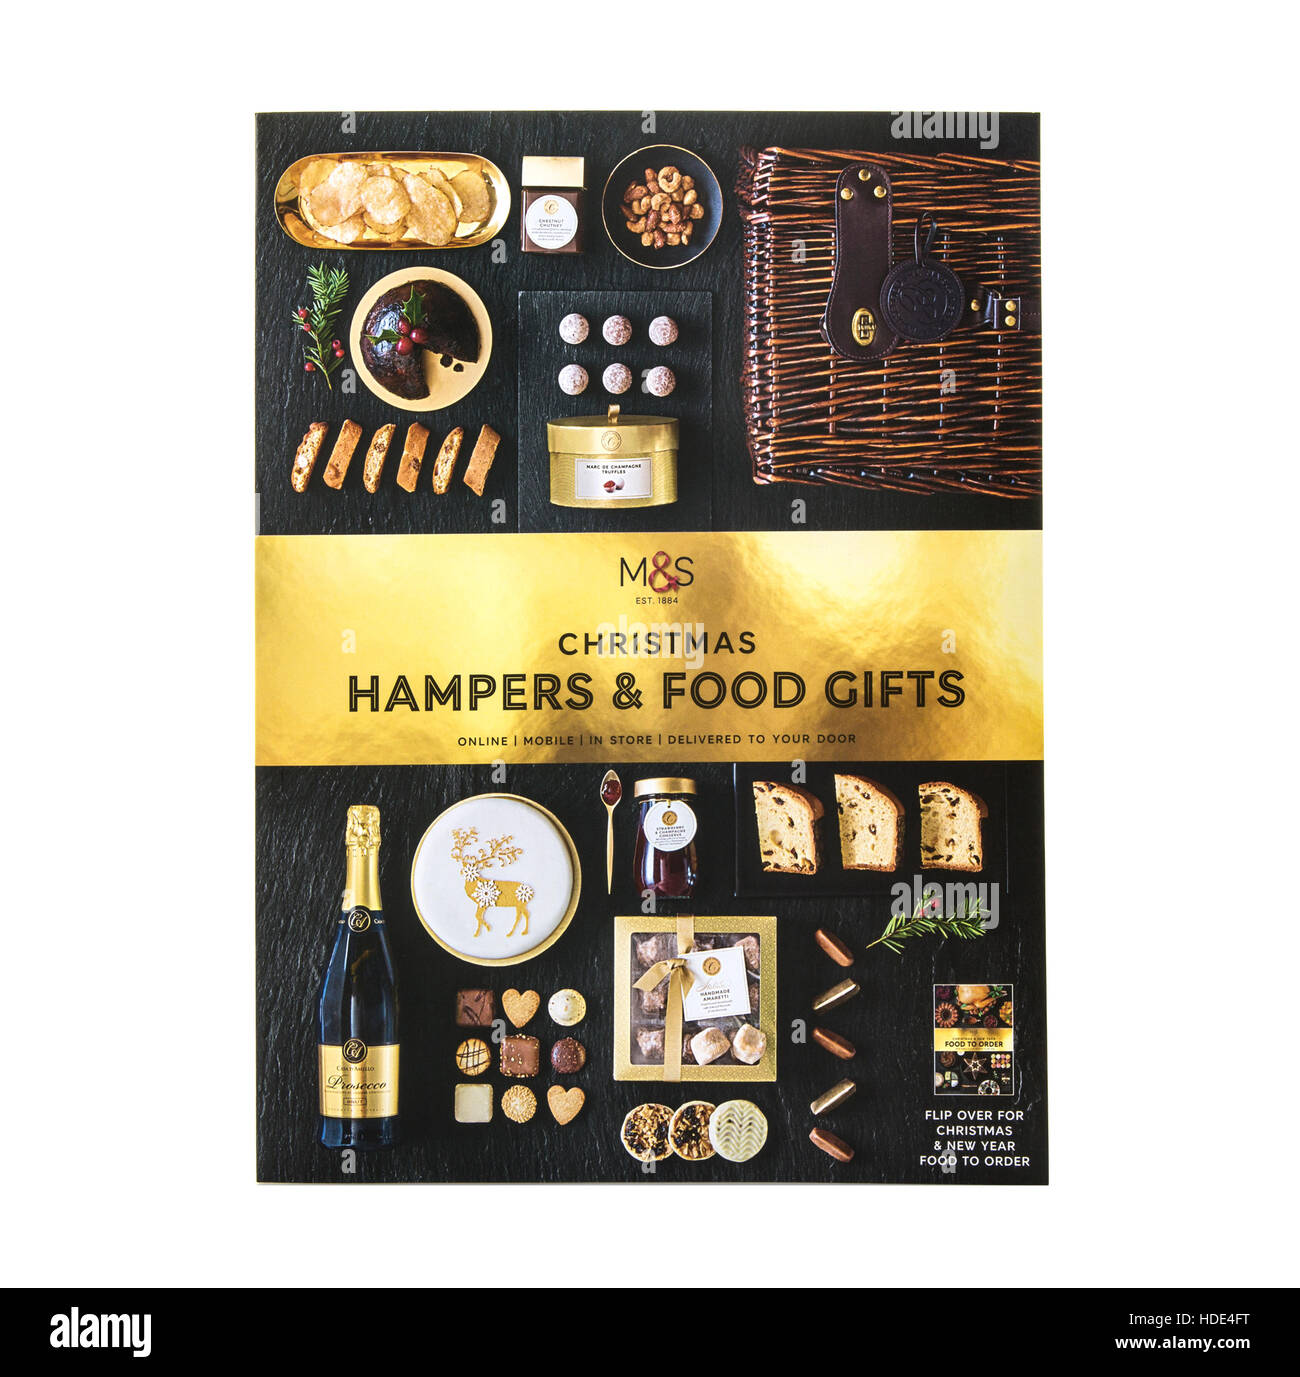 Marks And Spencer Christmas Hampers and food Gifts on a white background - Stock Image